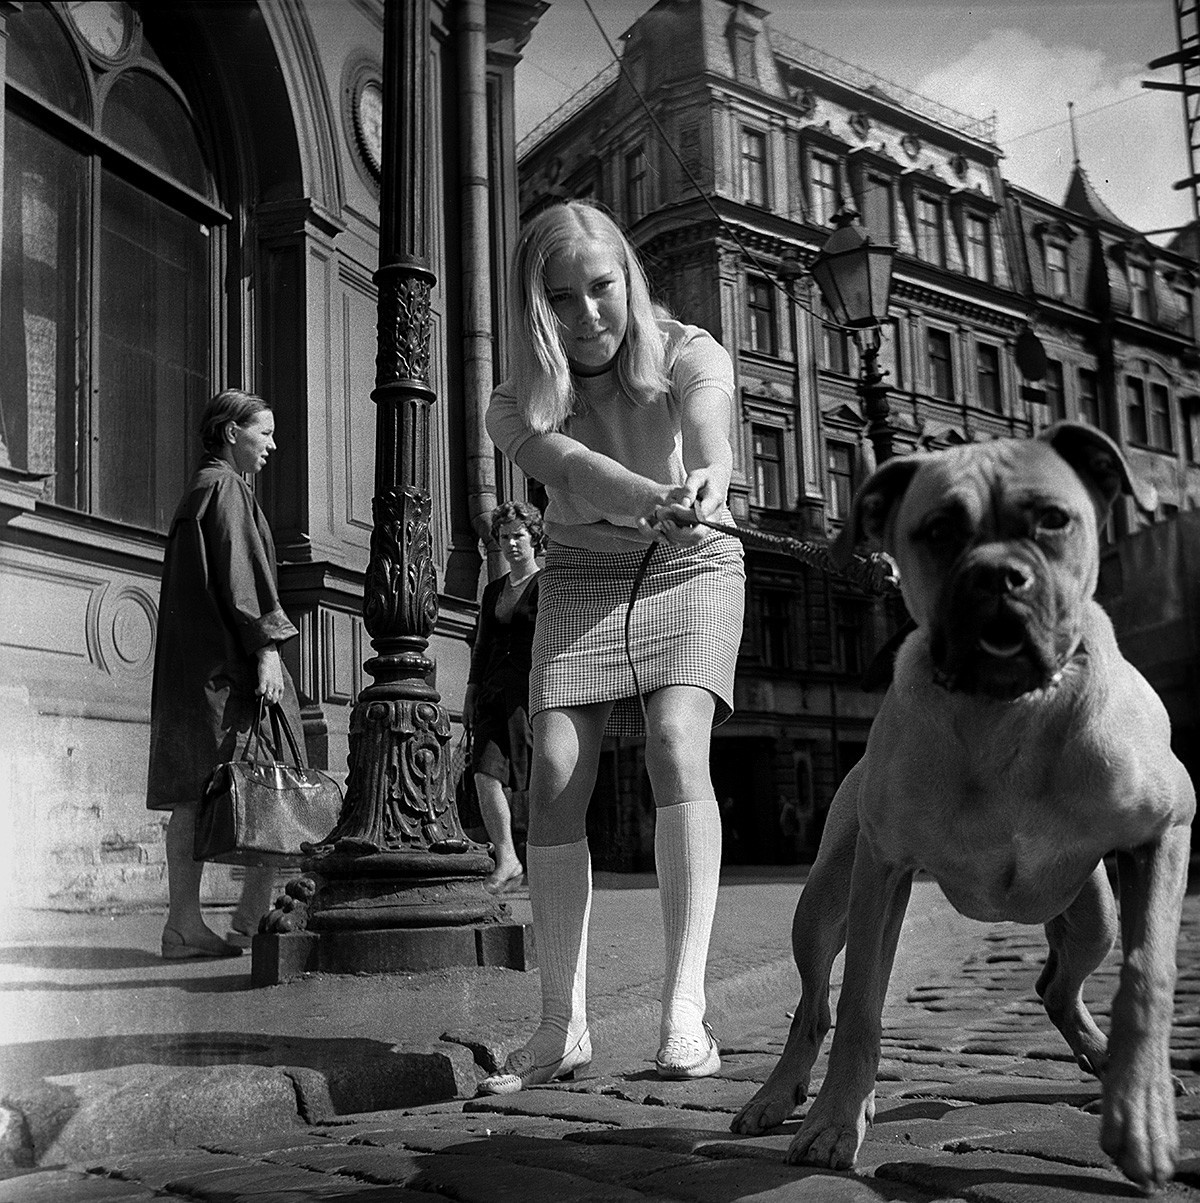 In the streets of central Riga, 1968.